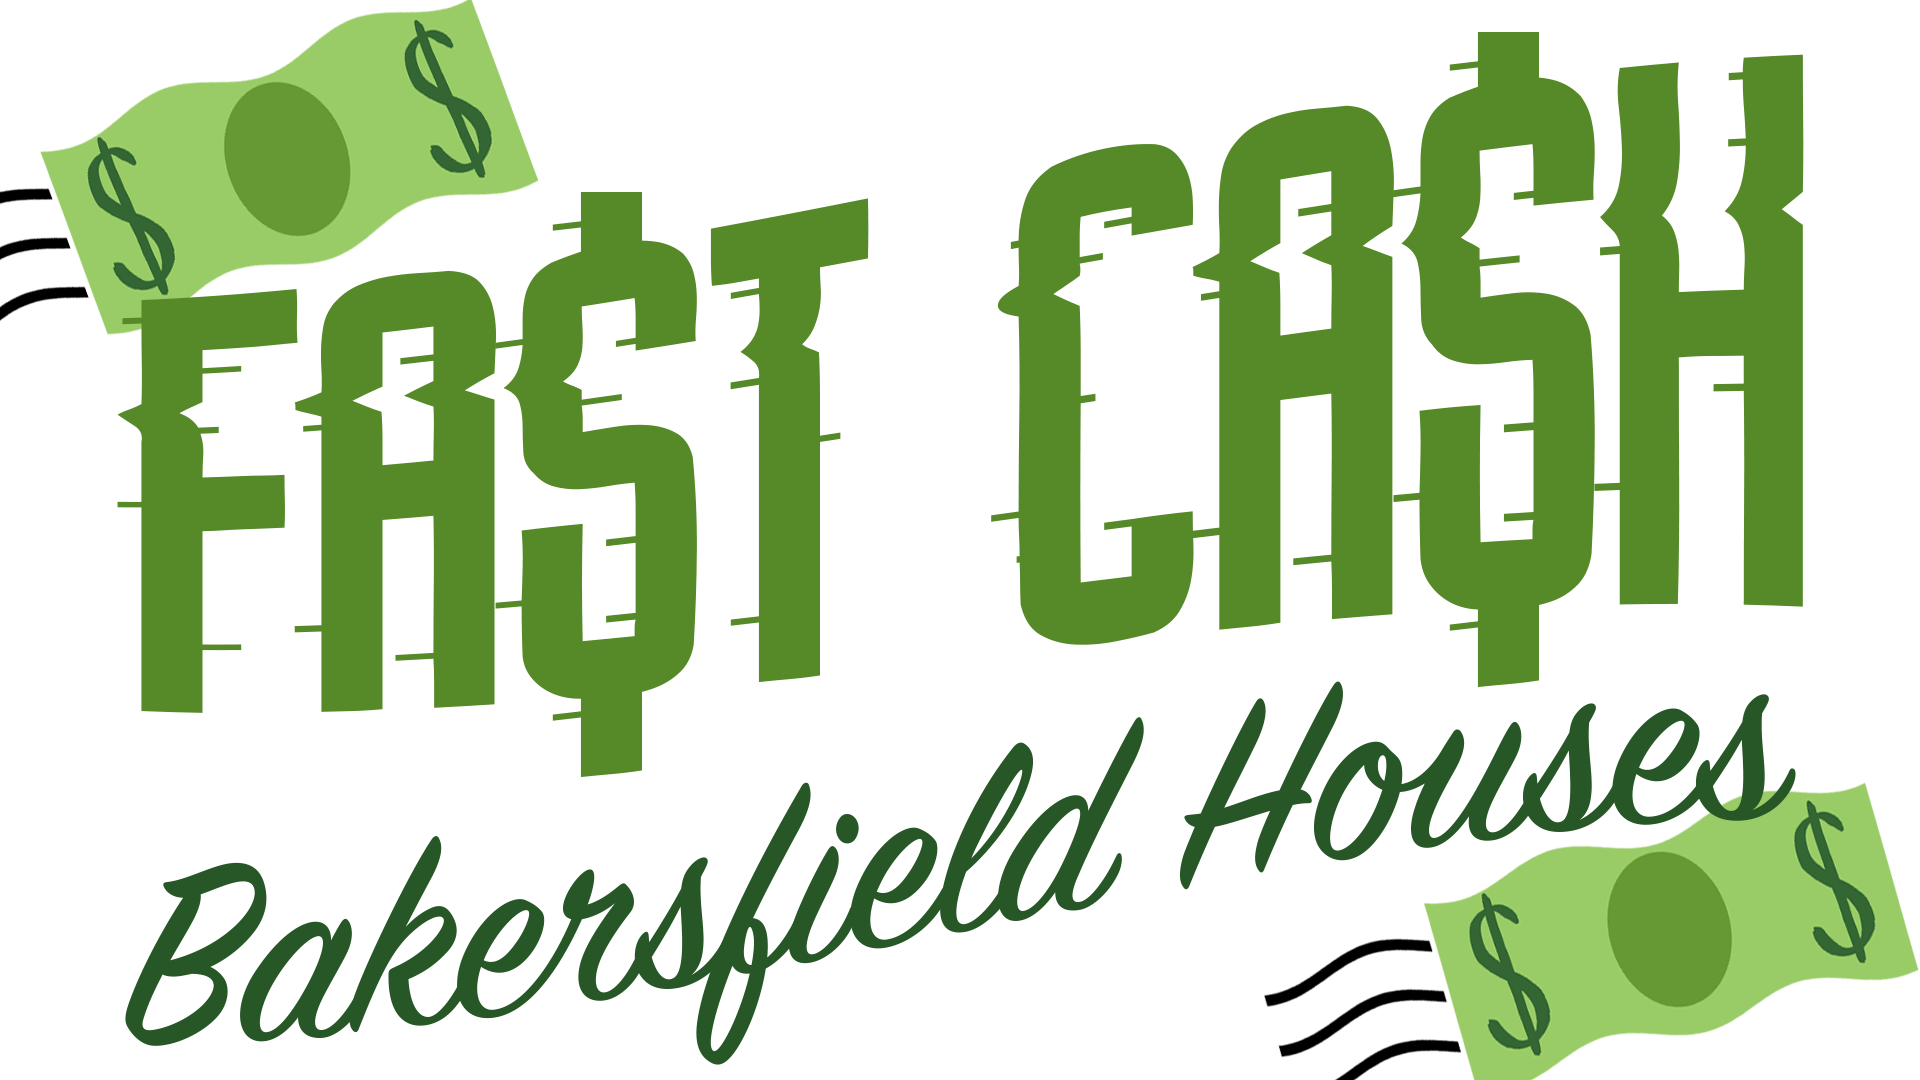 Fast Cash Bakersfield Houses logo